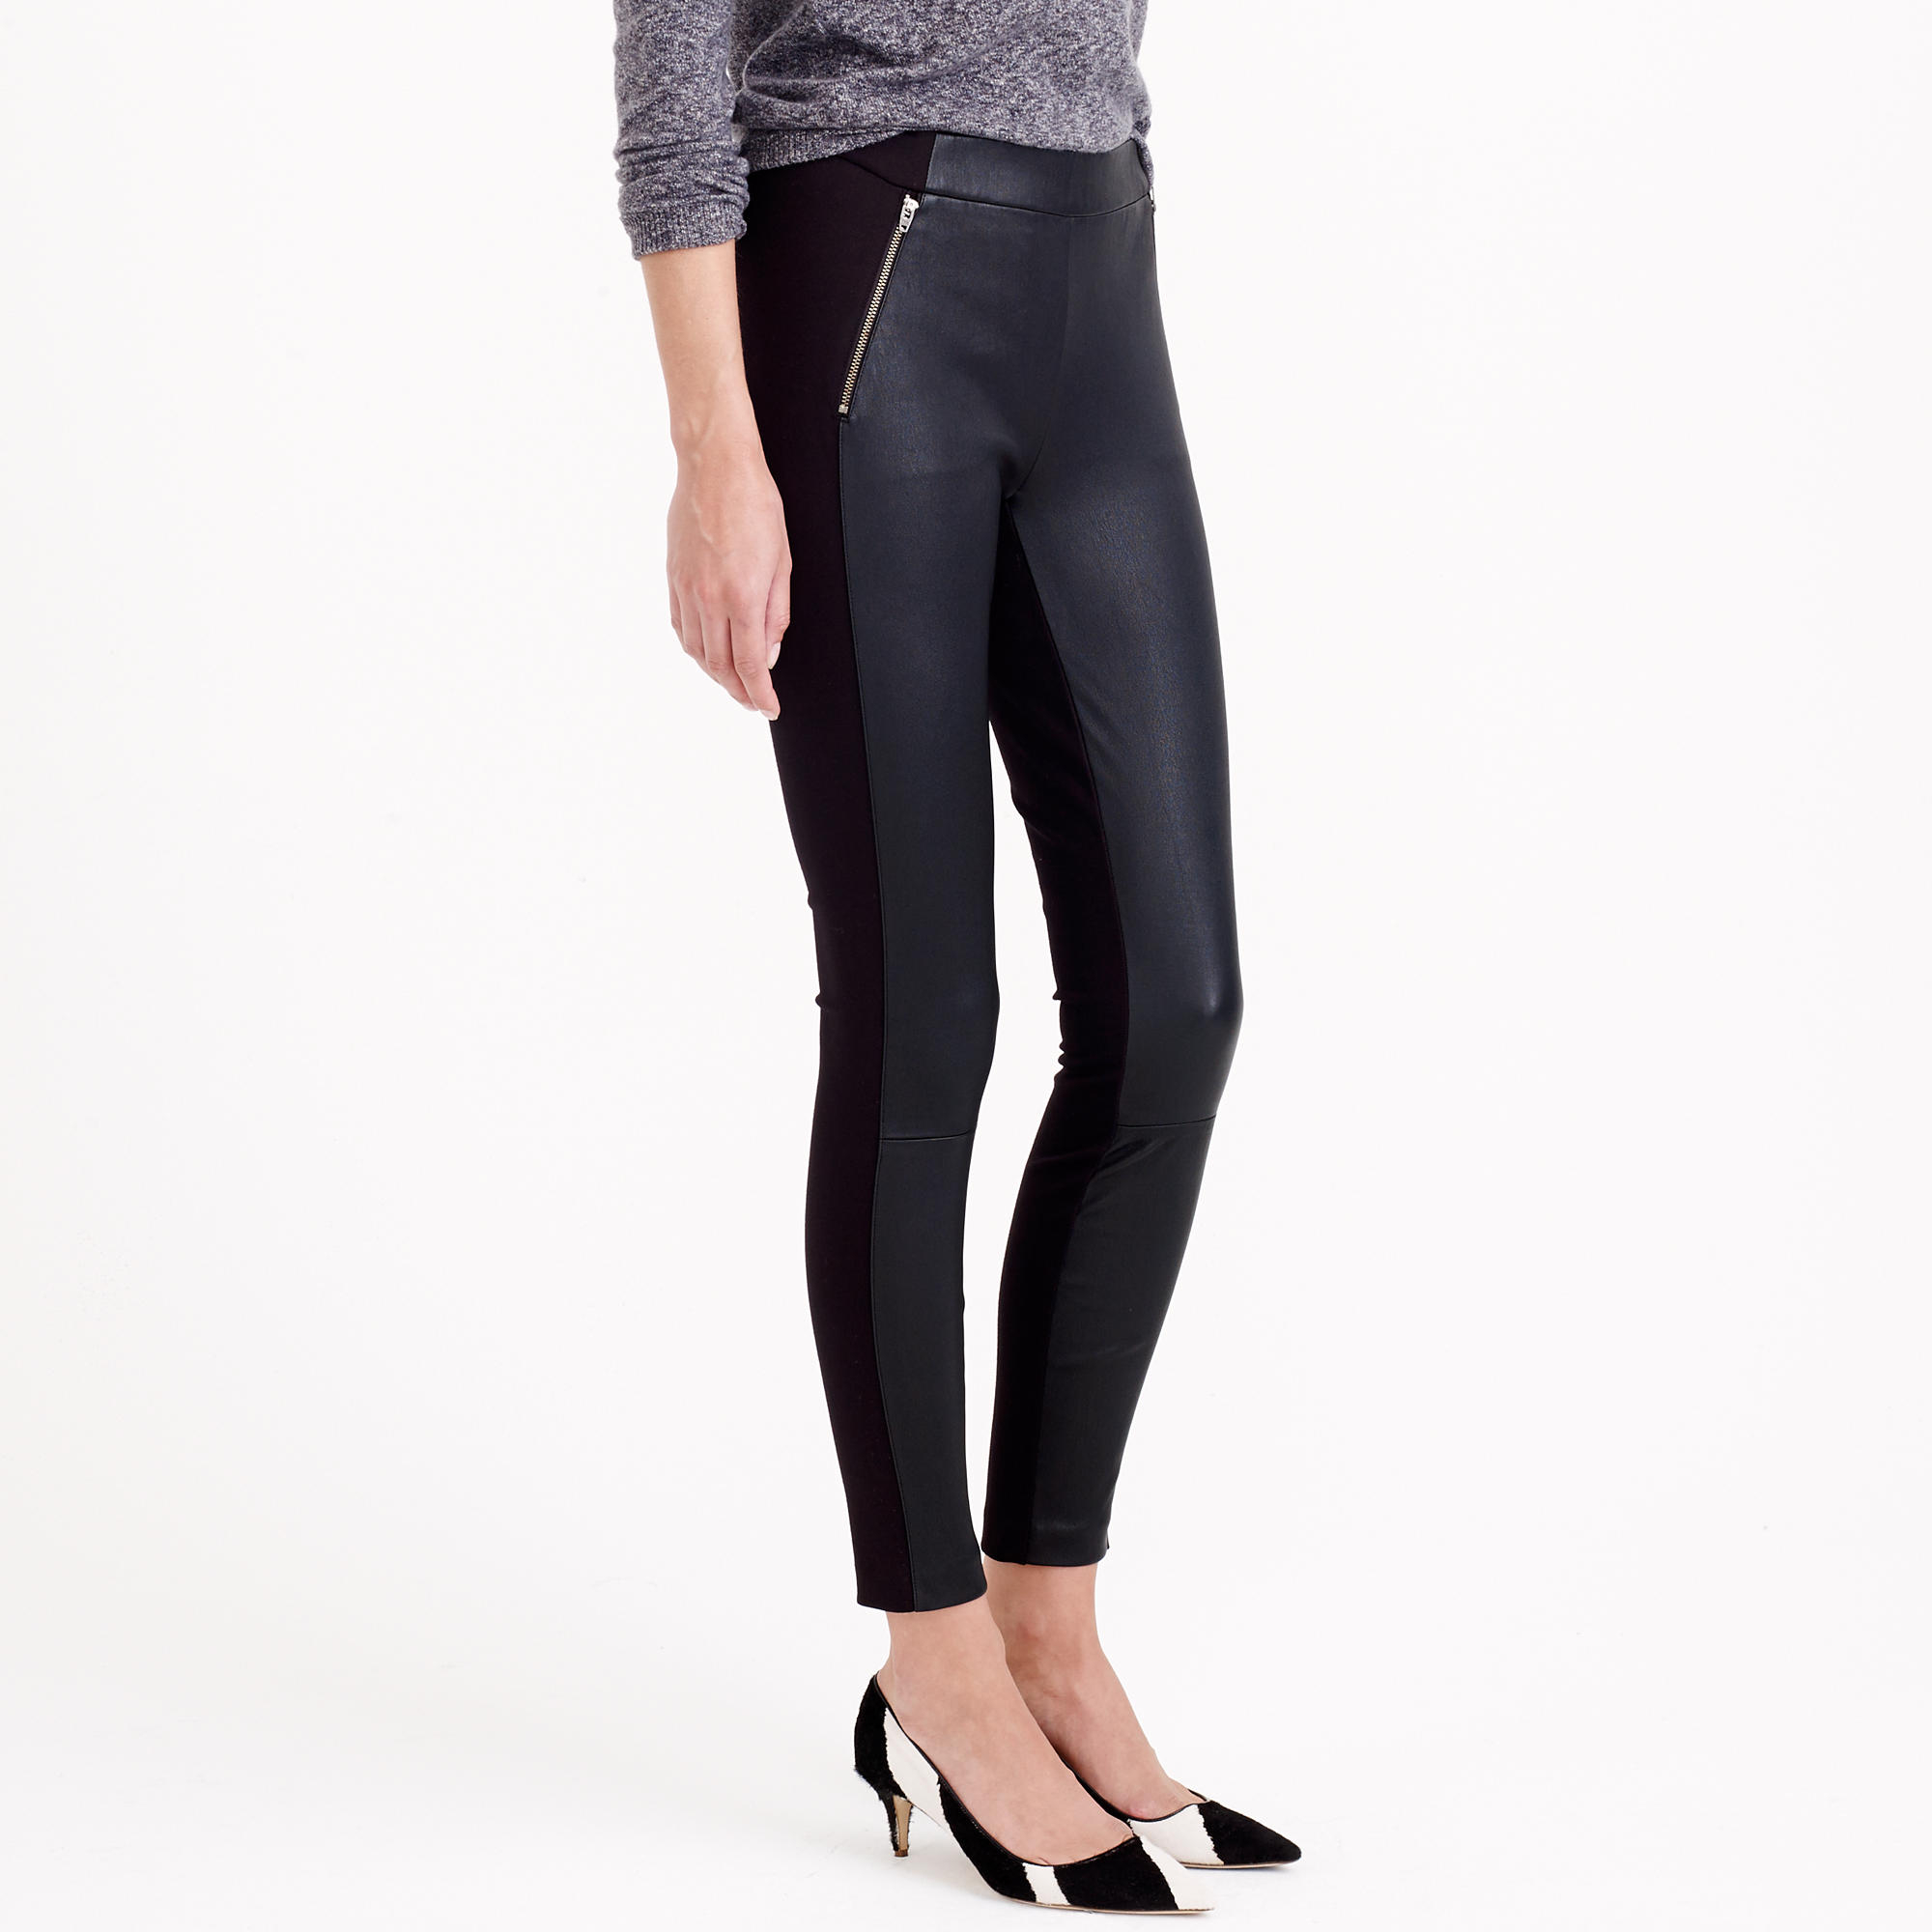 3b17073068357c J.Crew Pixie Pant With Leather Panels in Black - Lyst